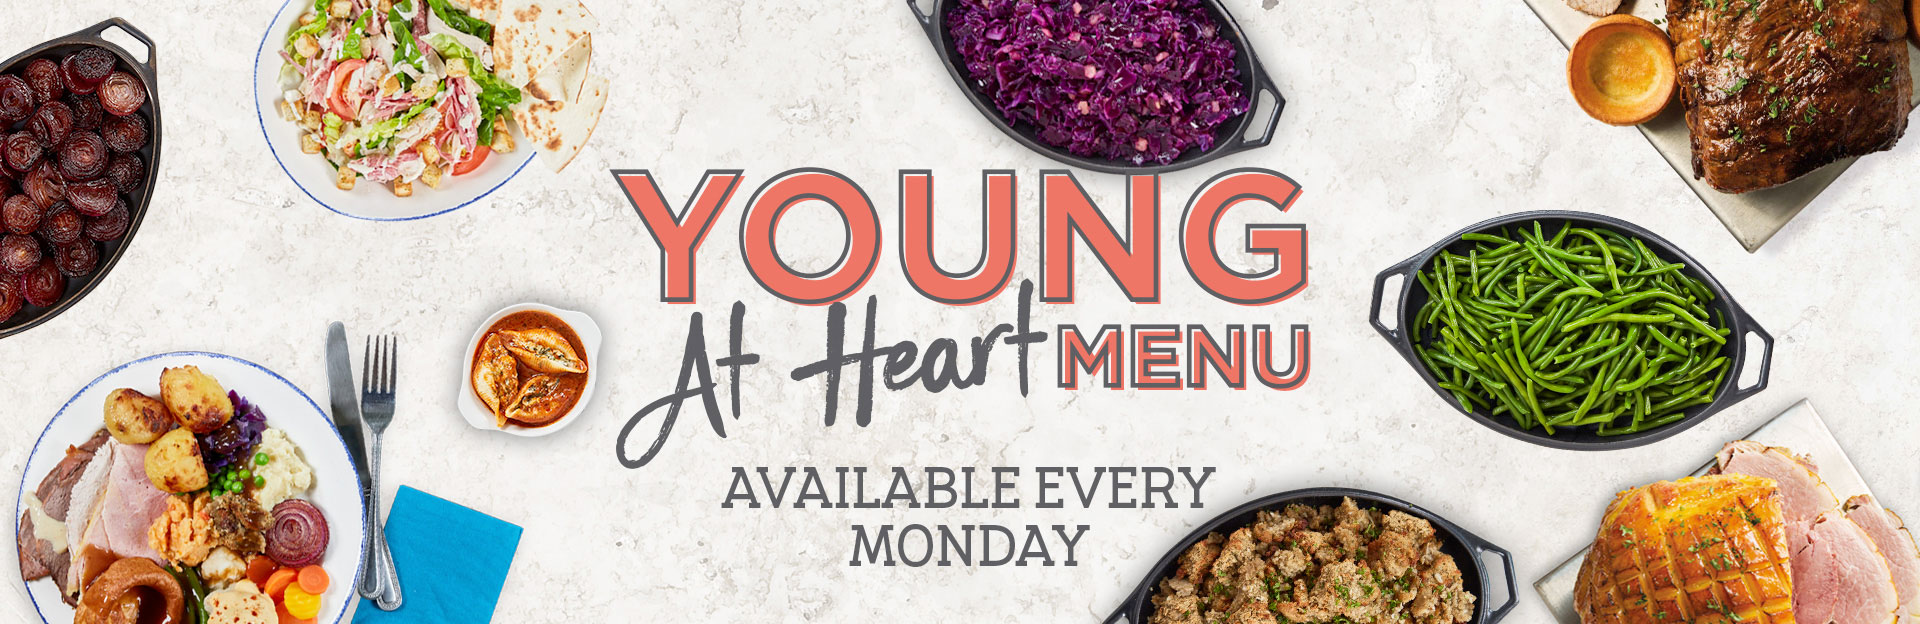 Young at Heart Menu